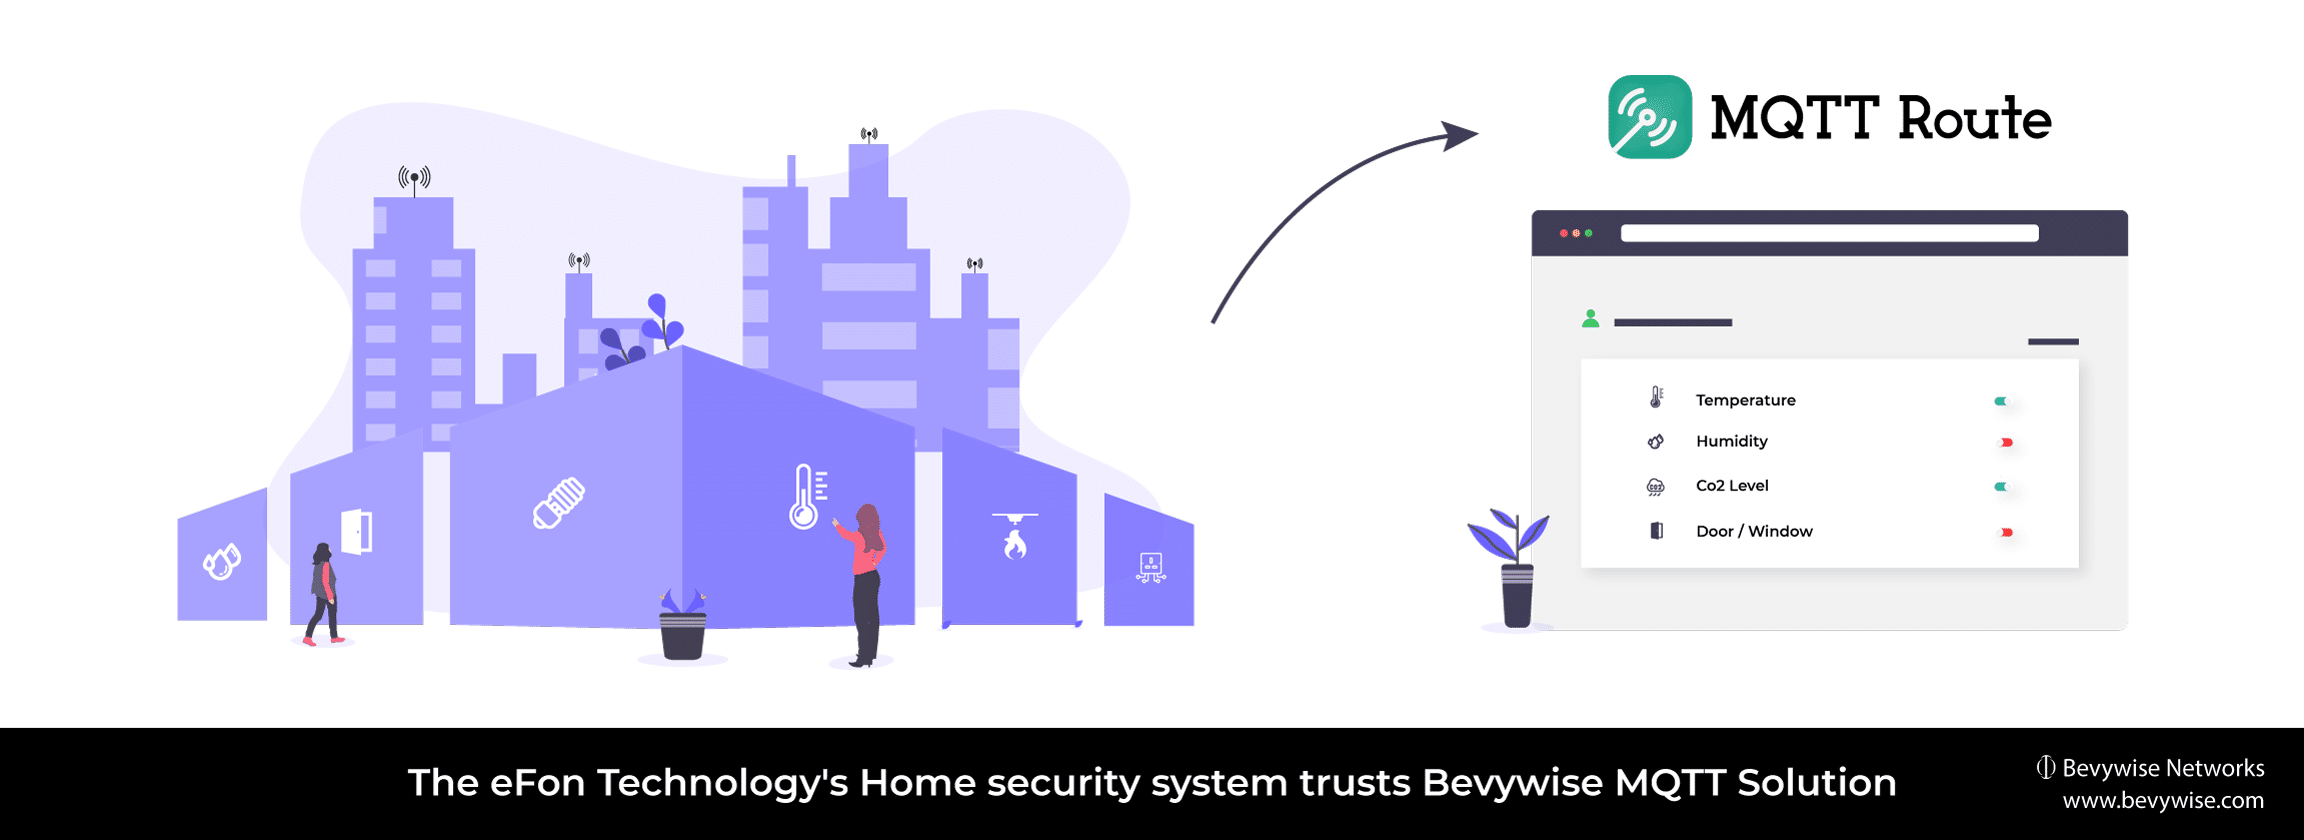 The eFon Technology's Smart Home security system trusts Bevywise MQTT Solution